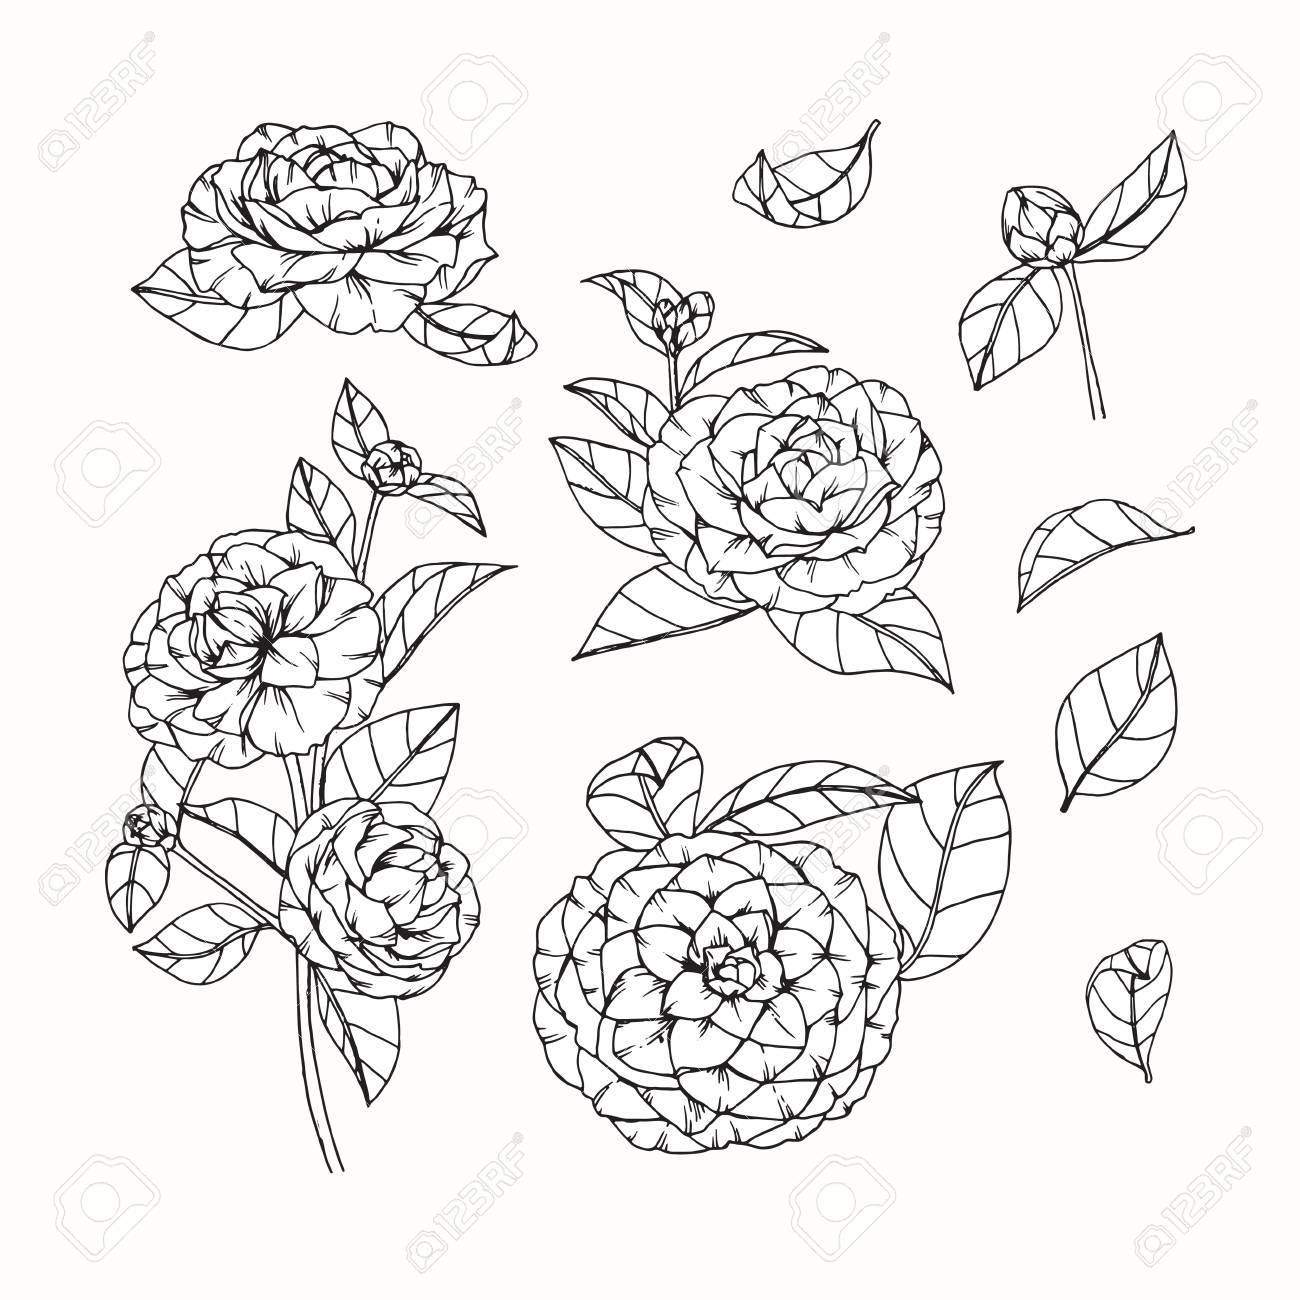 1300x1300 Camellia Flowers Drawing And Sketch With Line Art On White